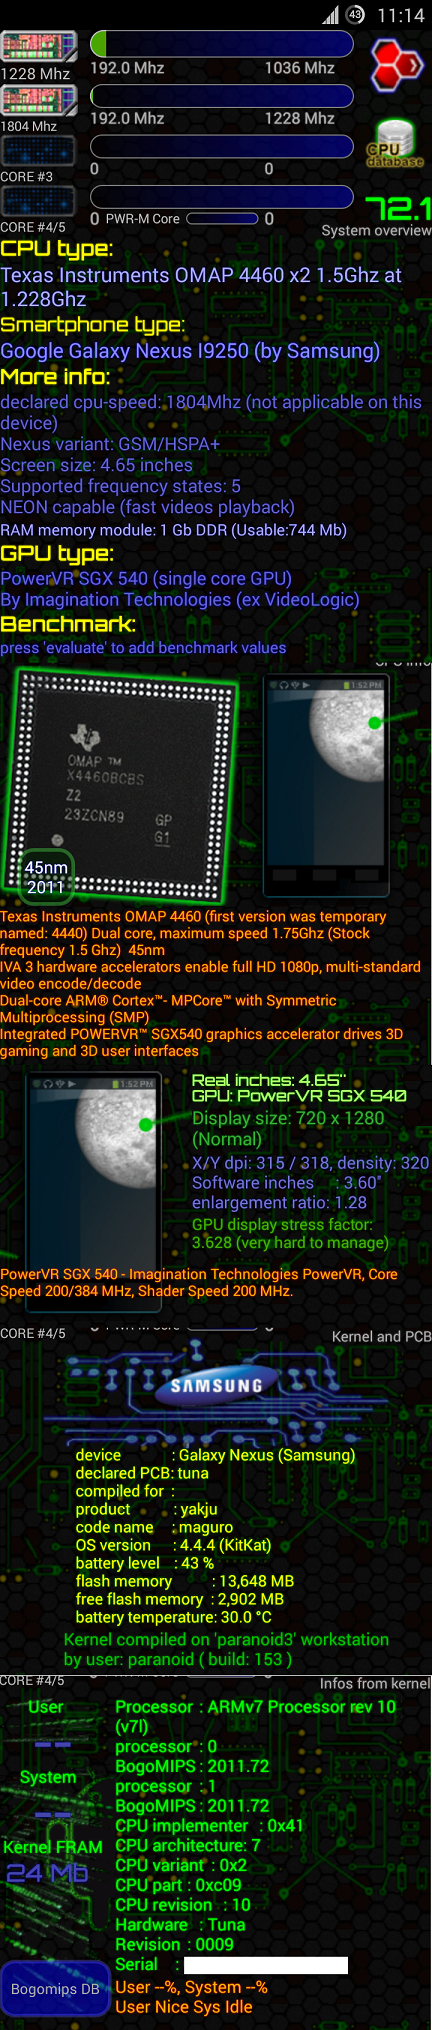 gnex cpu spec2.png